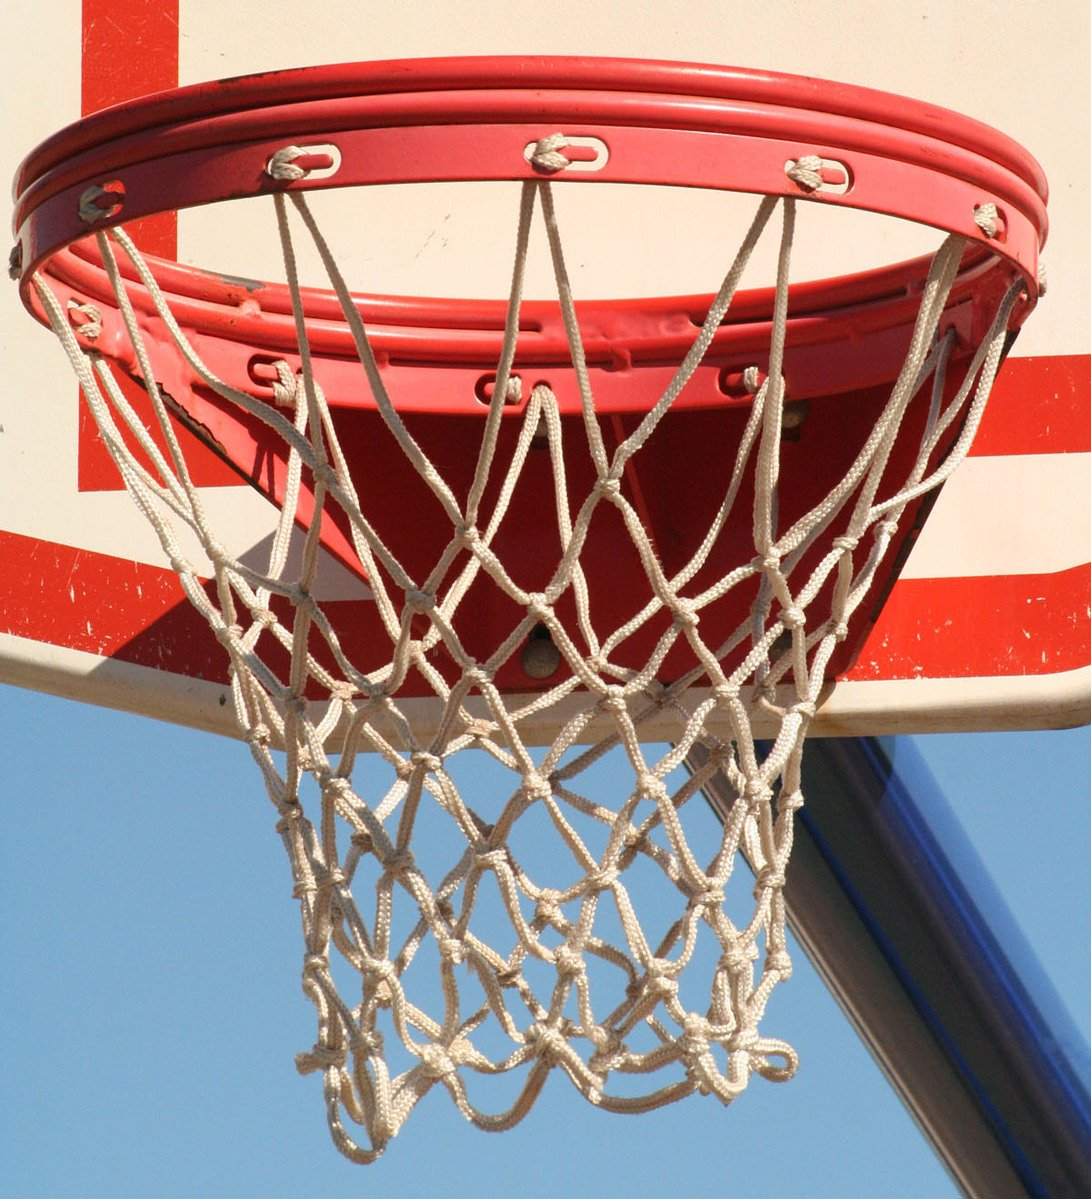 Free Basketball Net Stock Photo - FreeImages.com